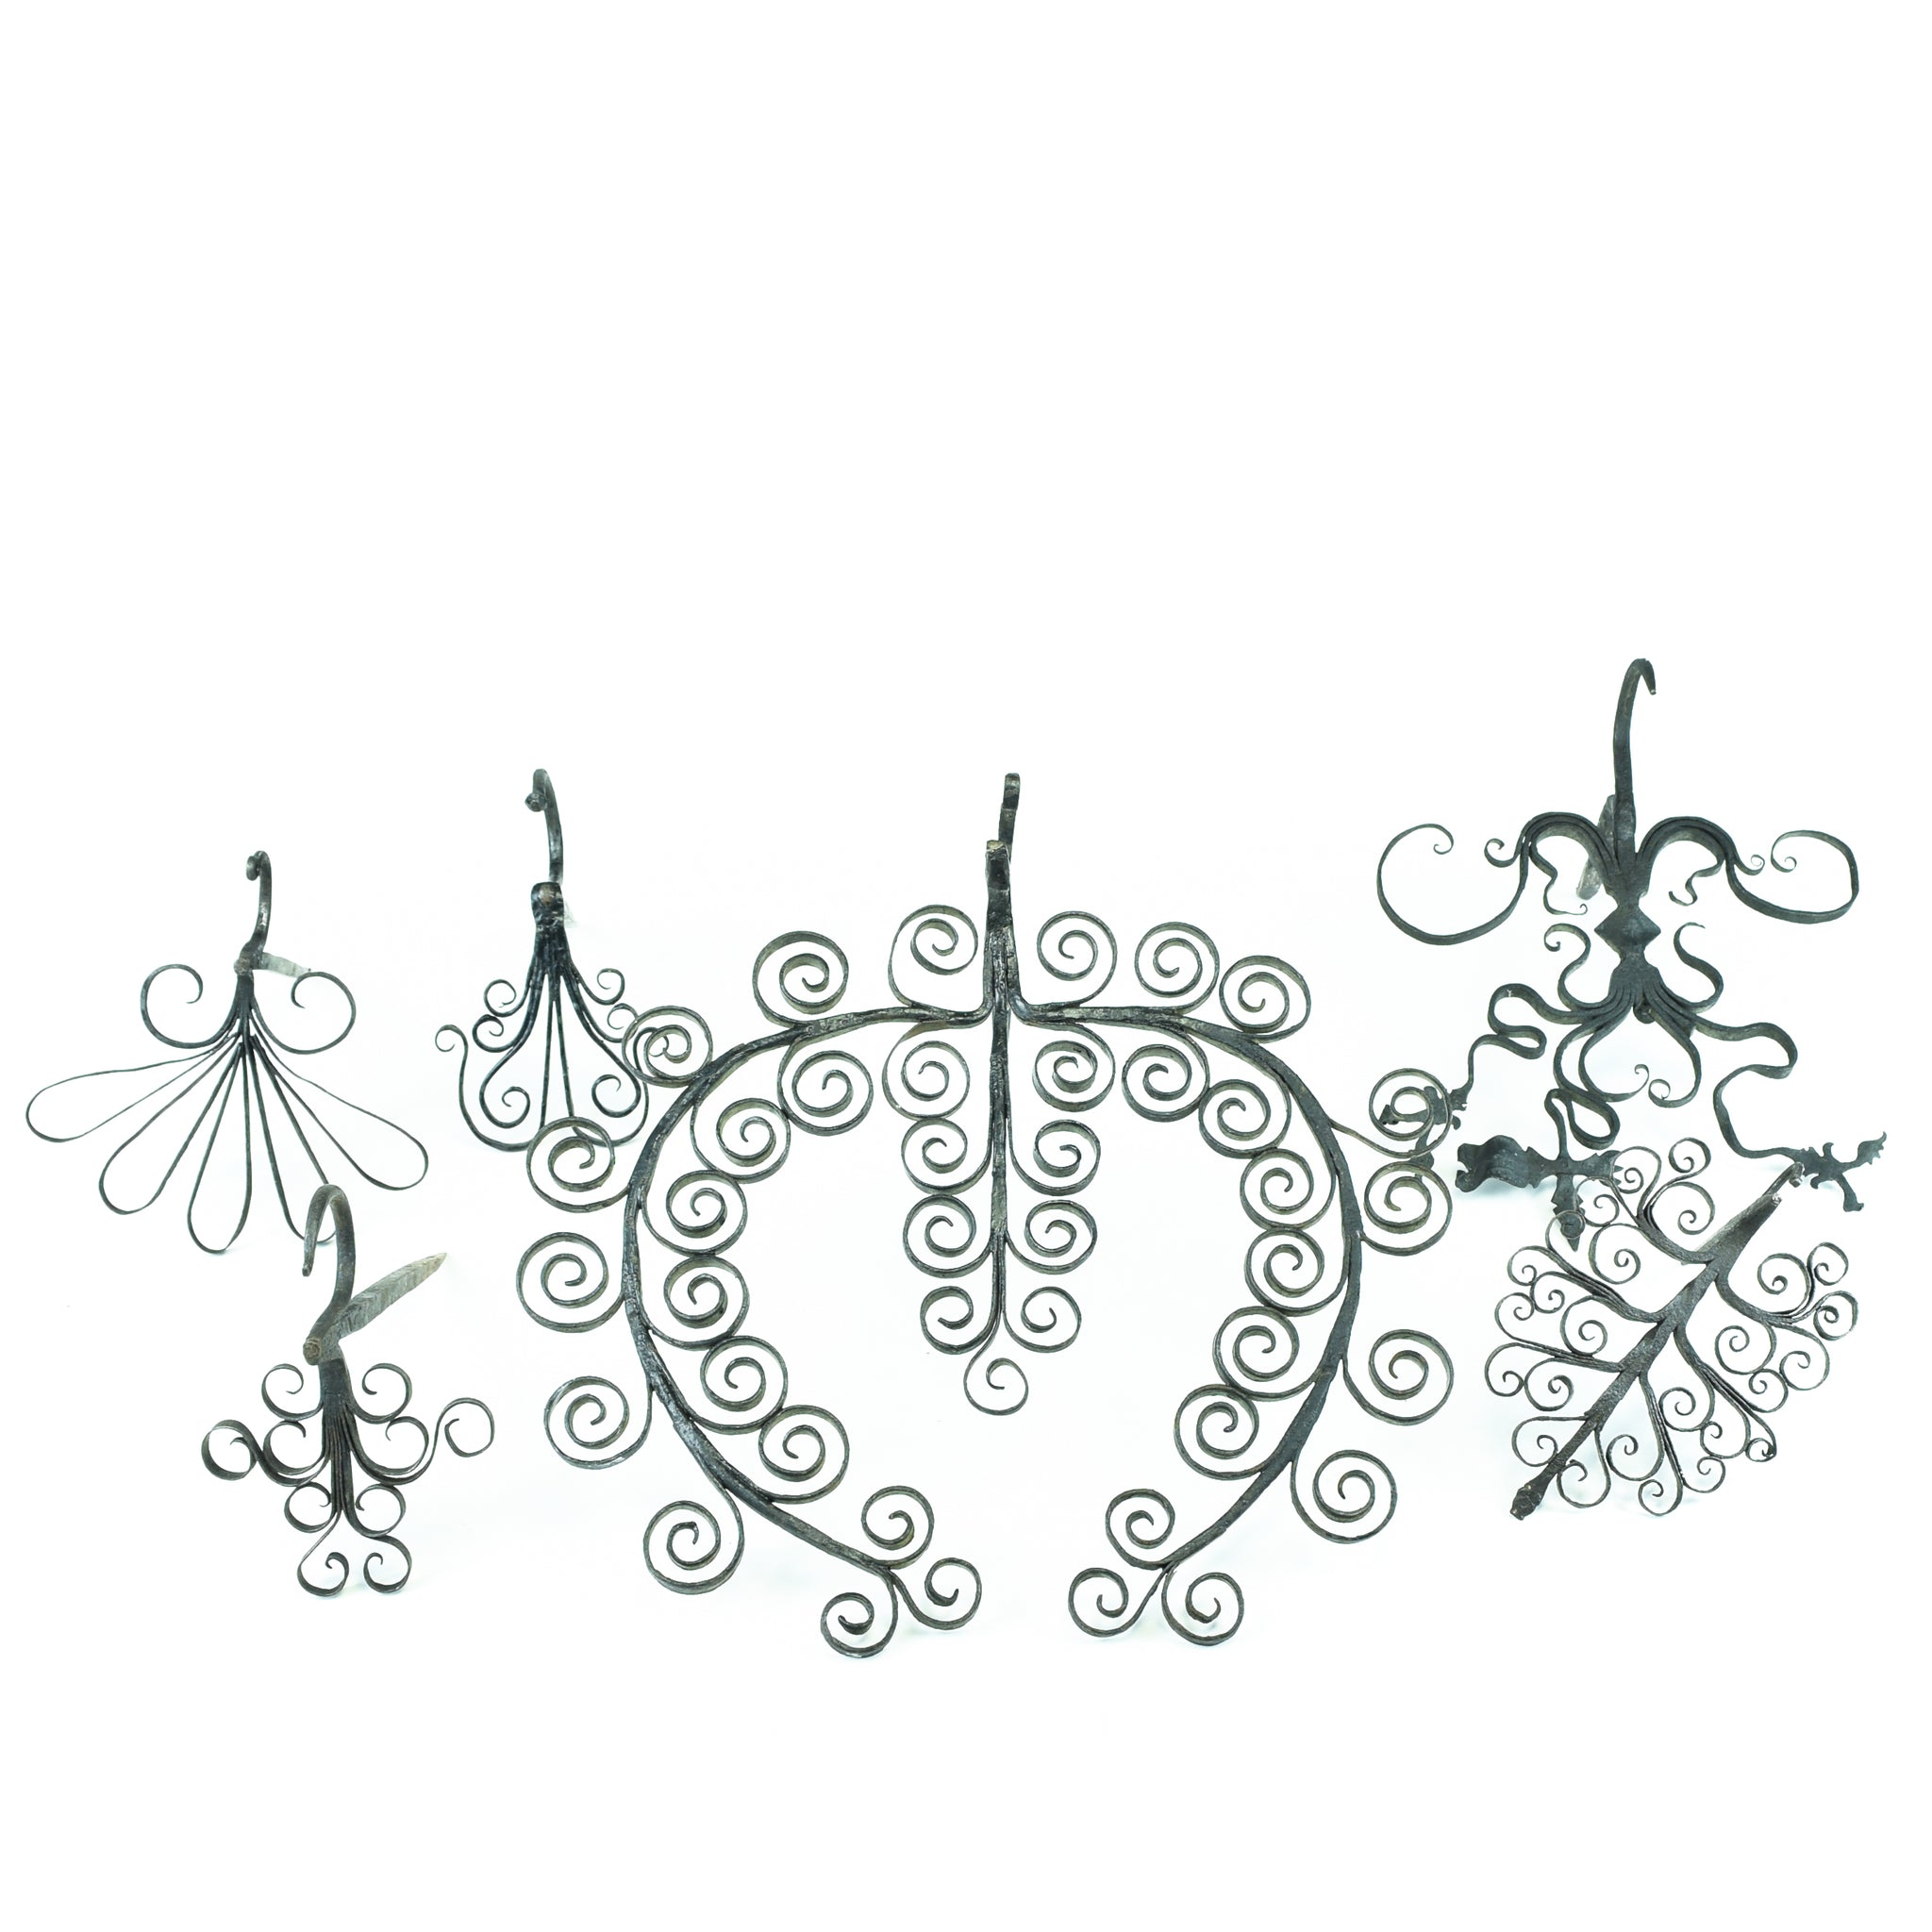 Spikes & Scrolled Decoration hooks, iron, lodge furnishings other, one of a kind